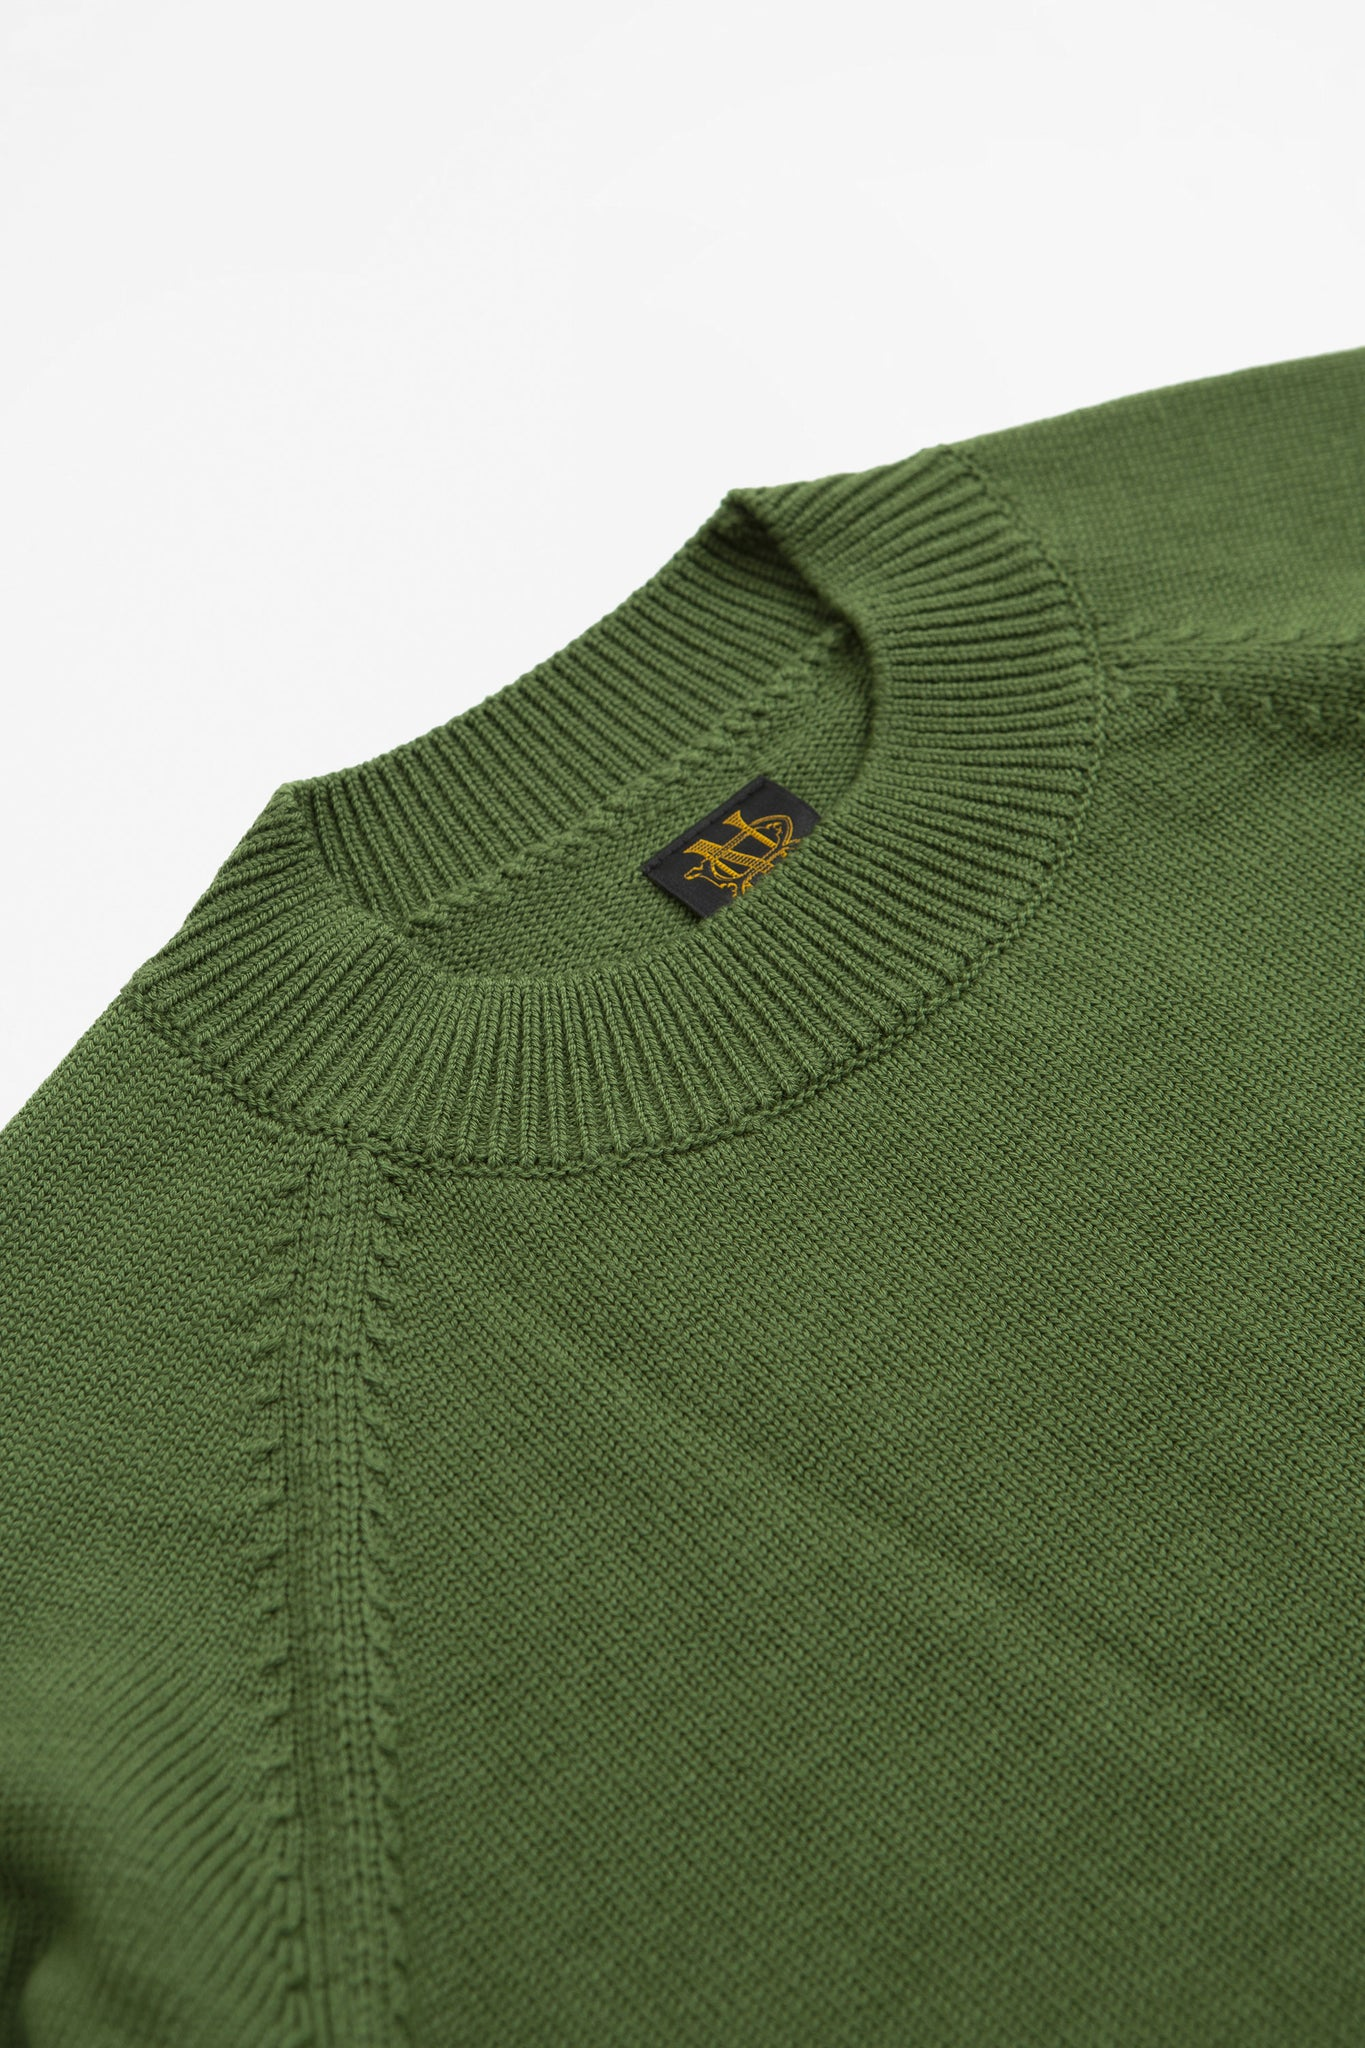 Aging wool crew neck green